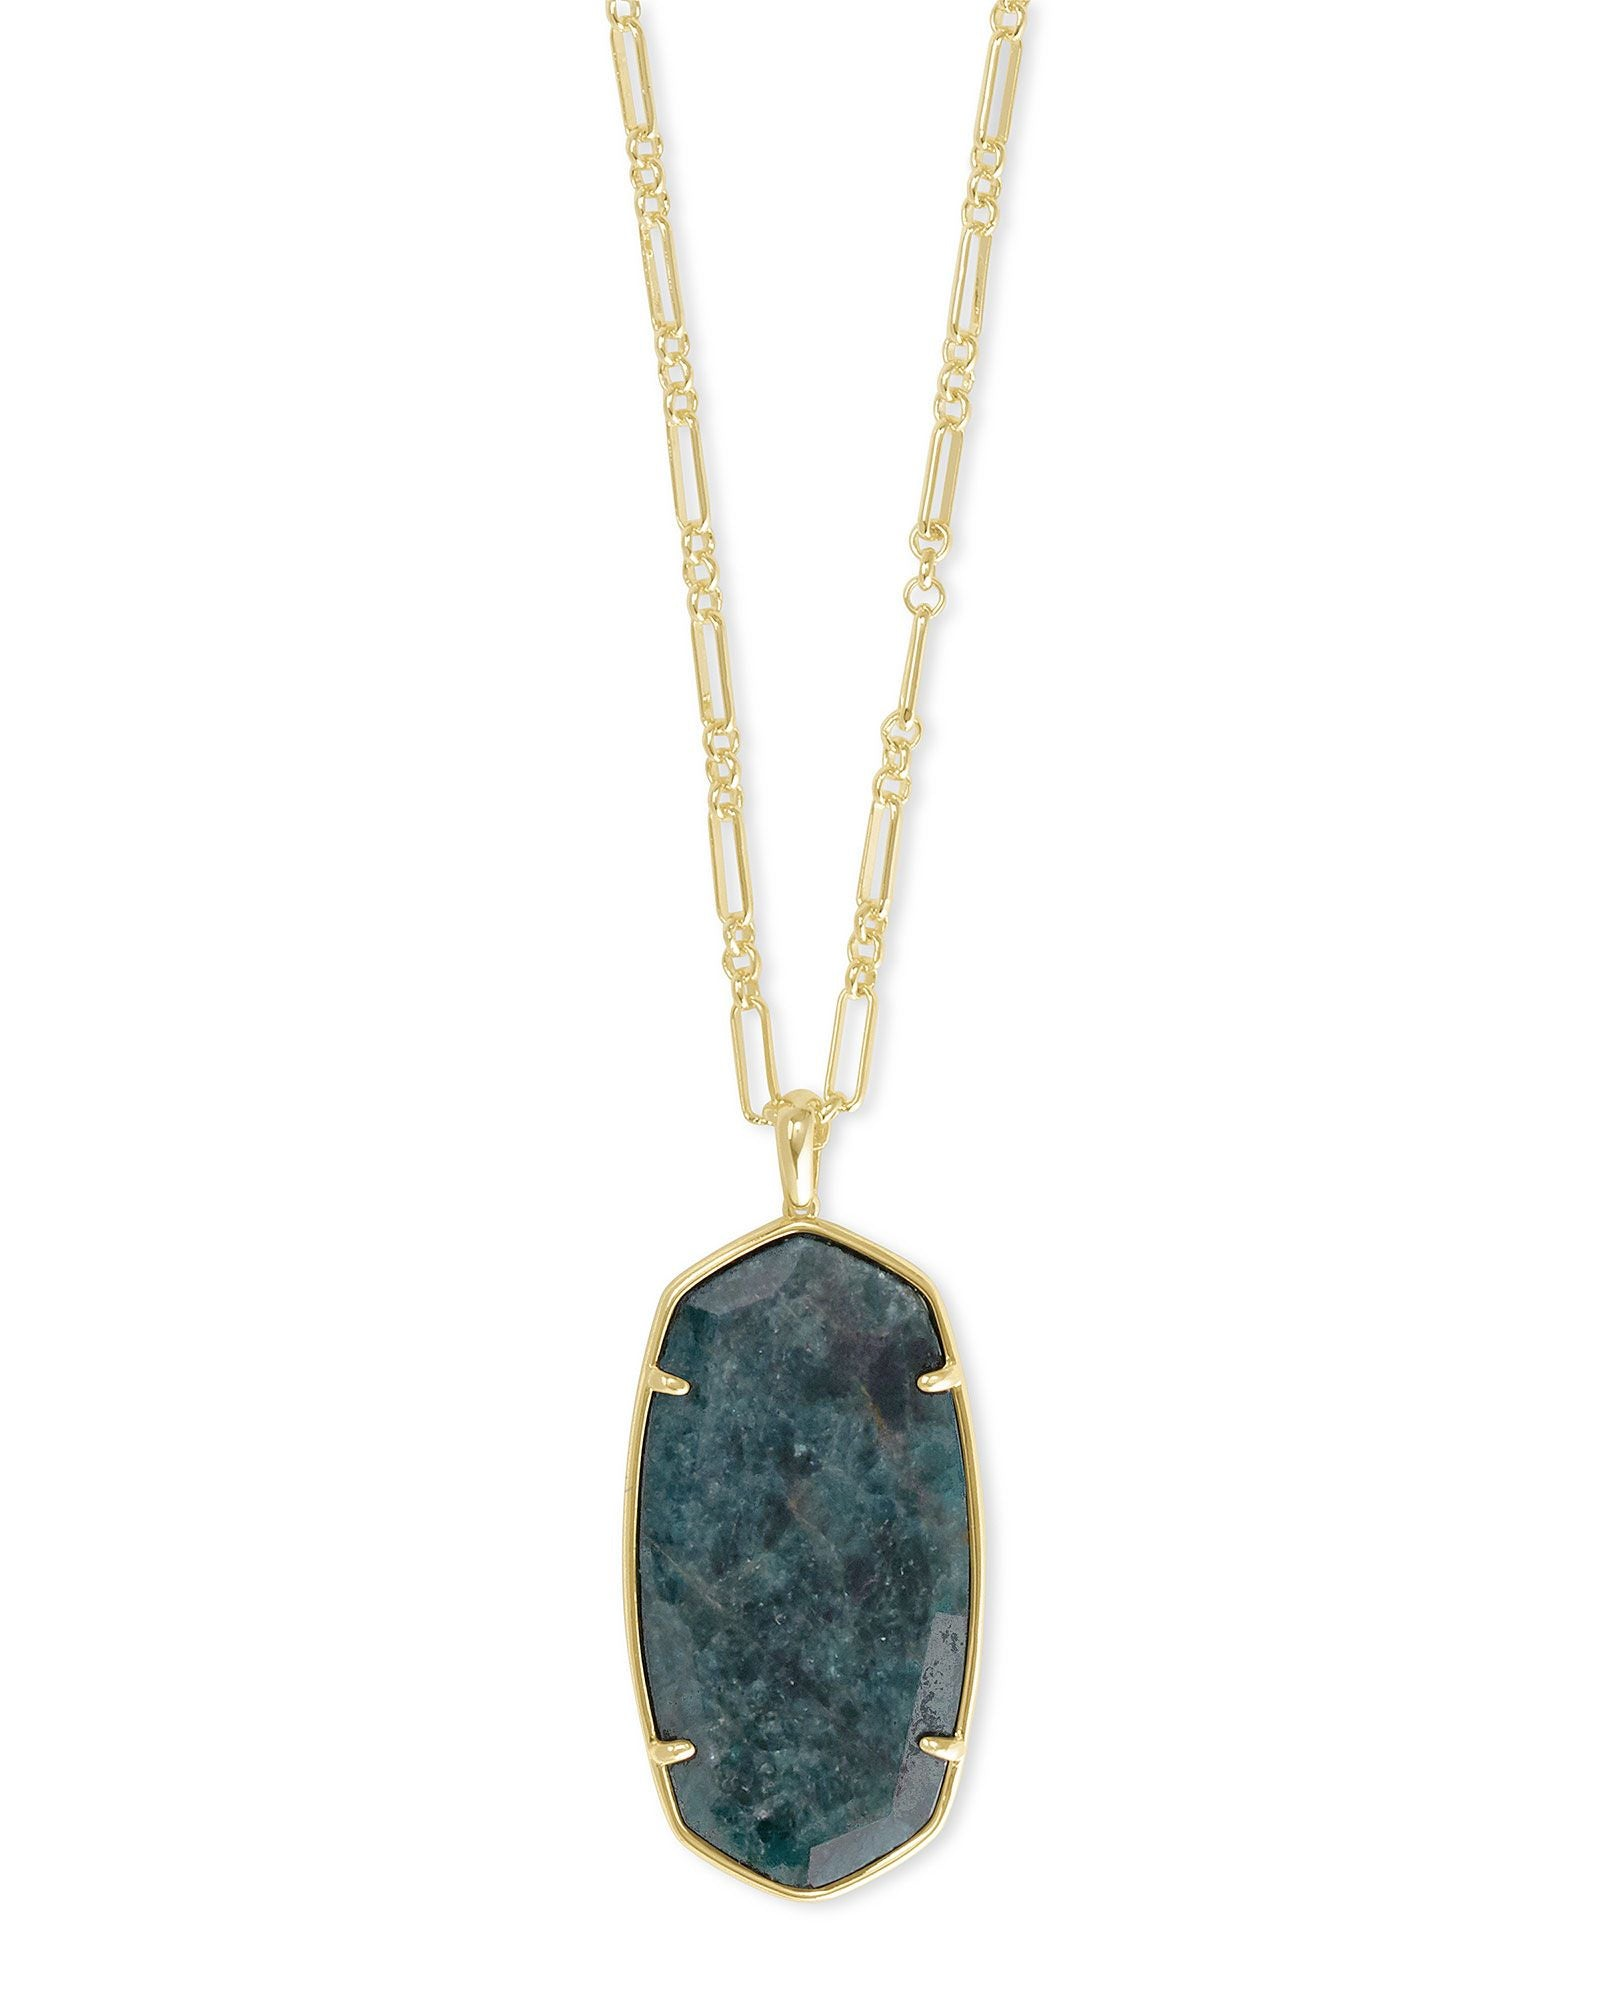 Faceted Reid Necklace Gold Green Apatite